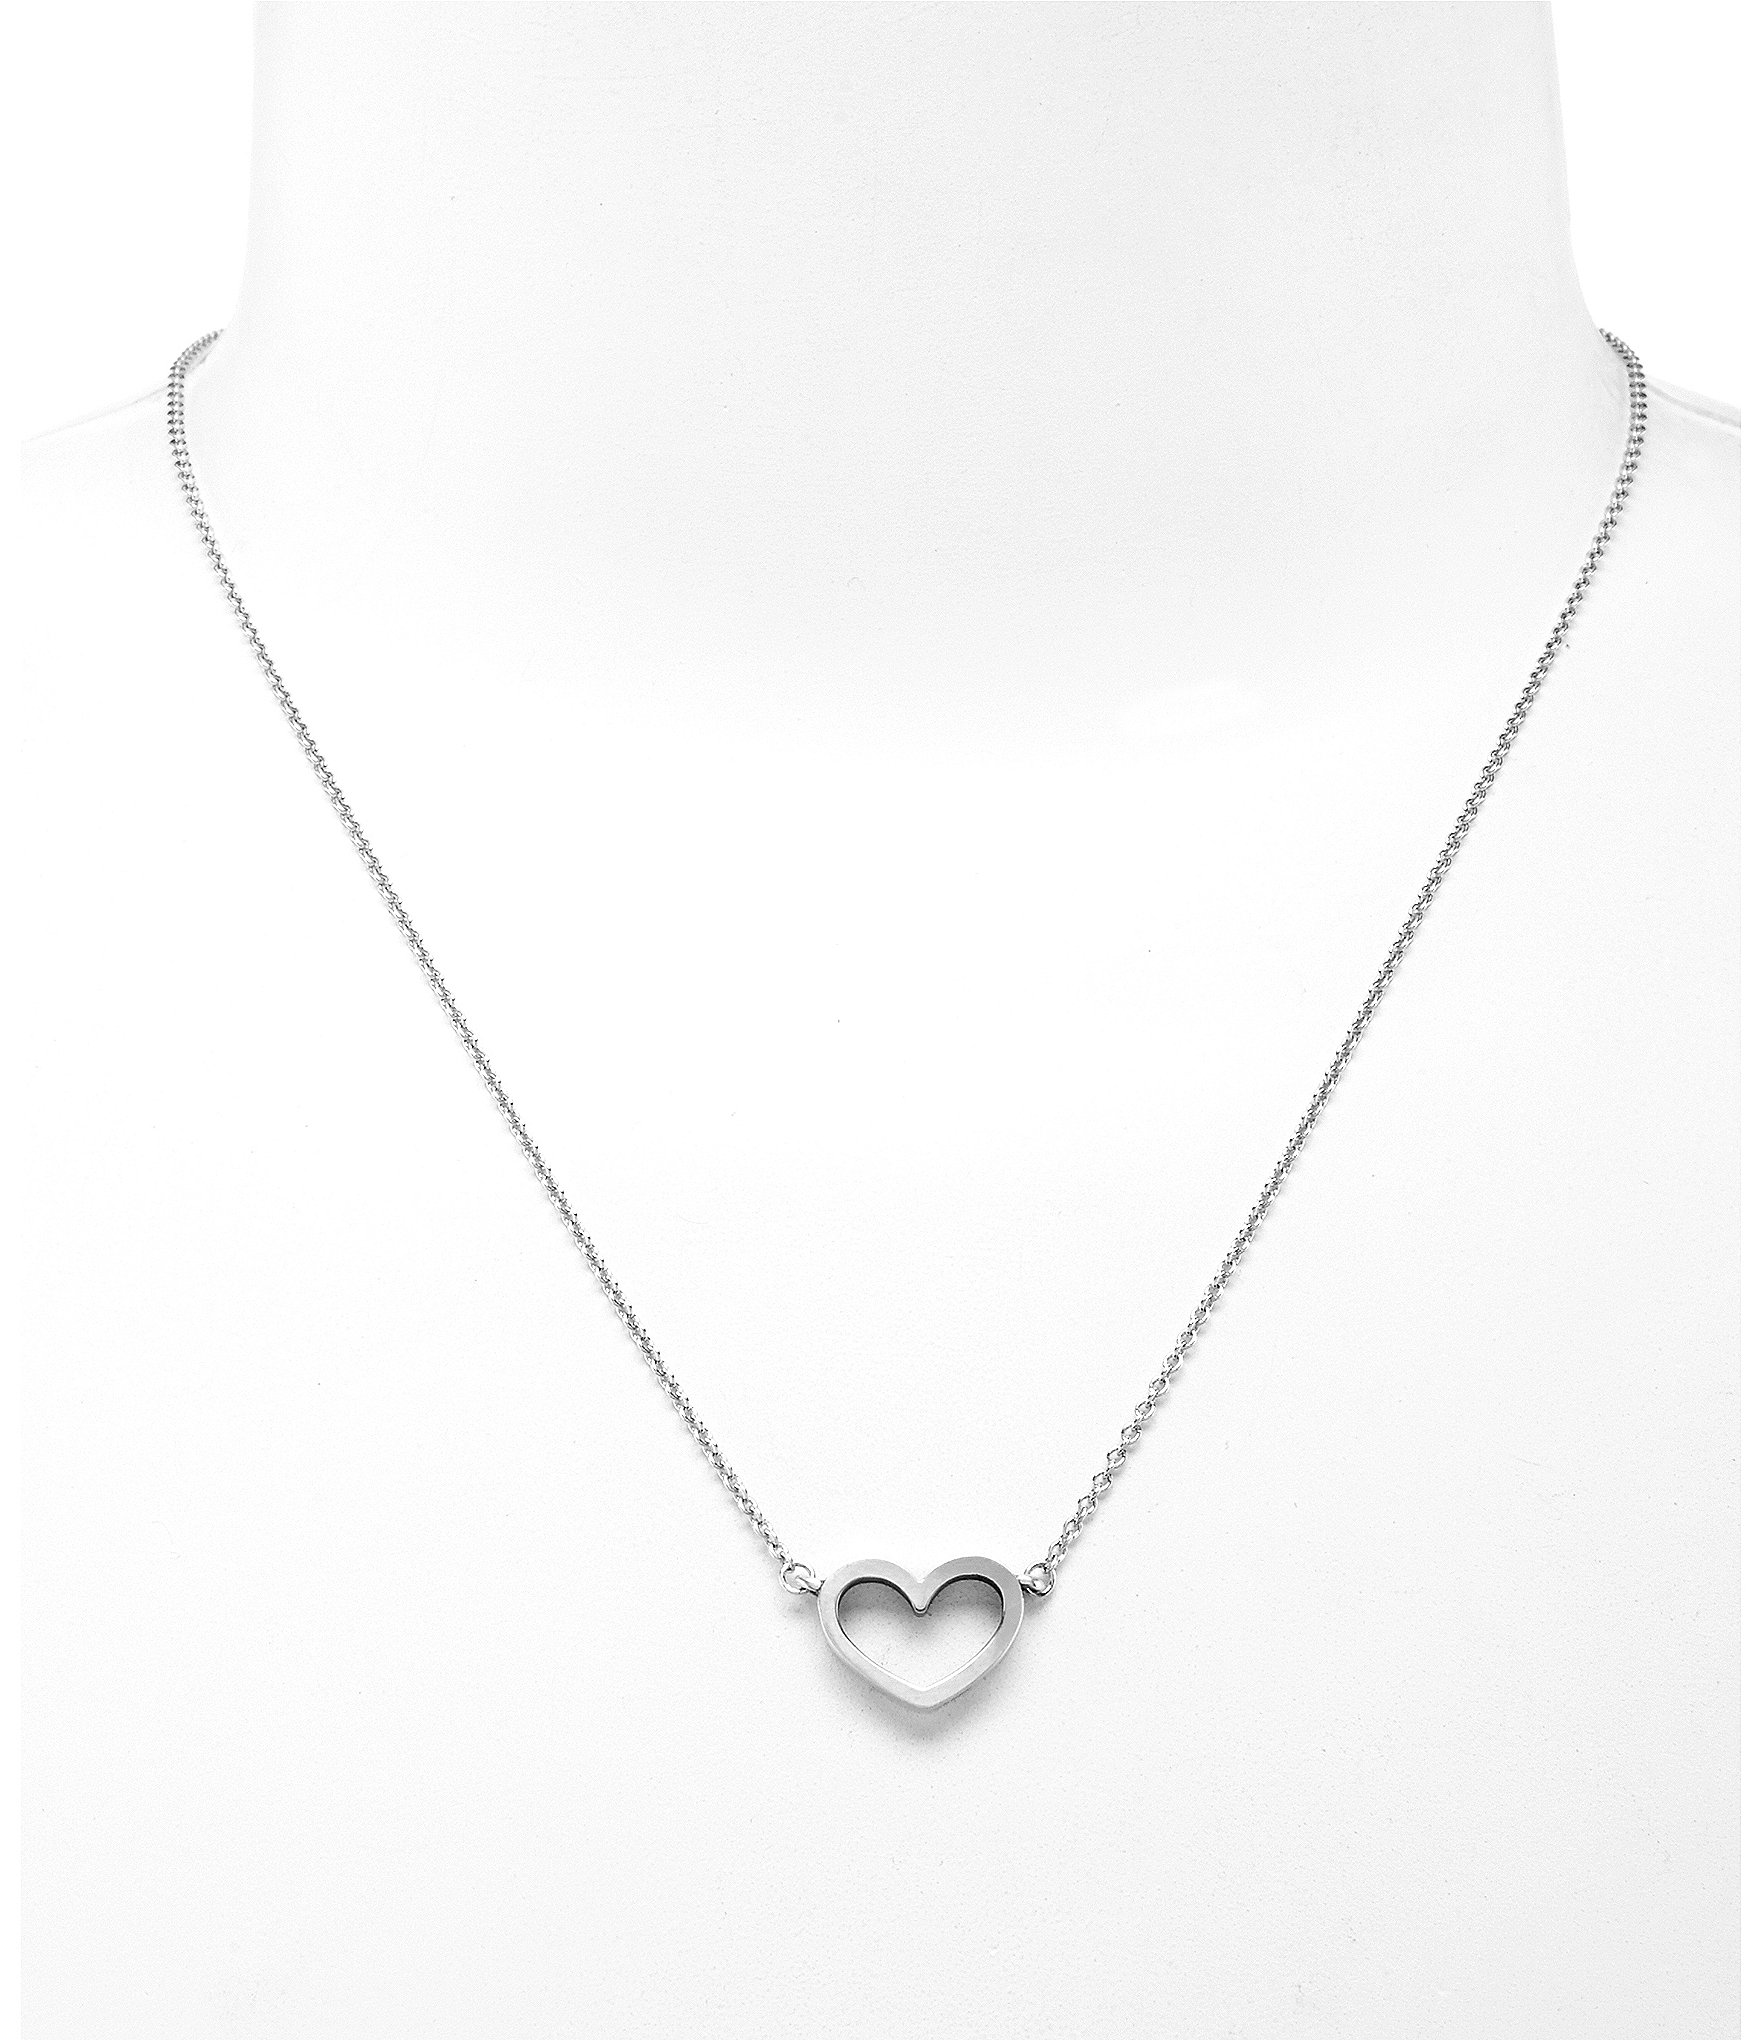 number cross necklace h silver plain d sterling pendant webstore samuel product